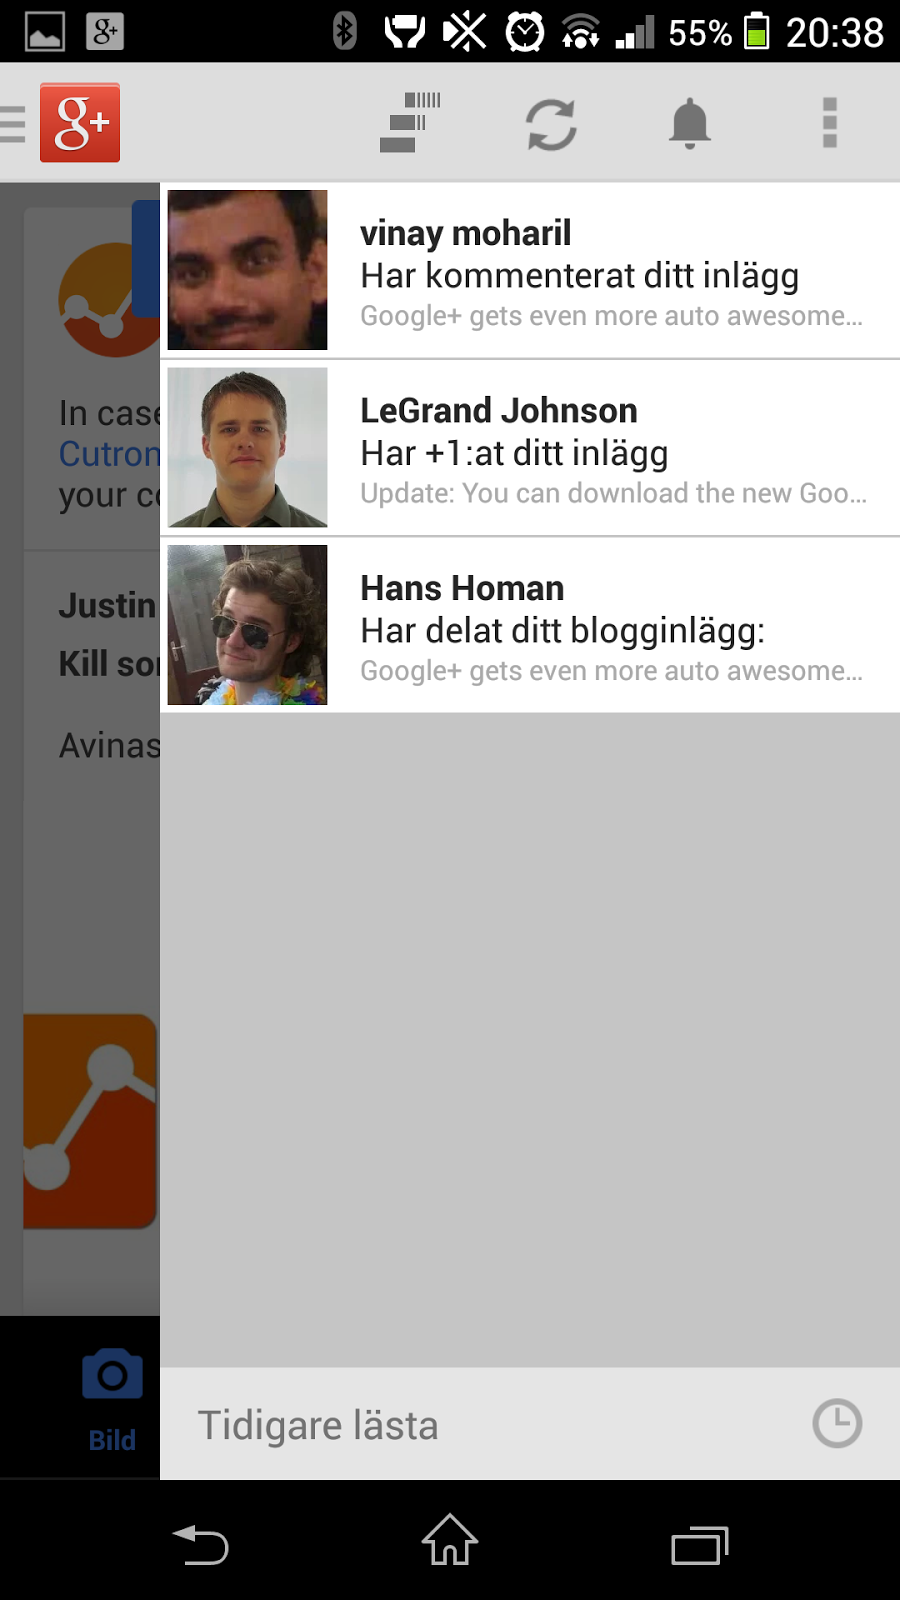 Google+ gets even more auto awesome features